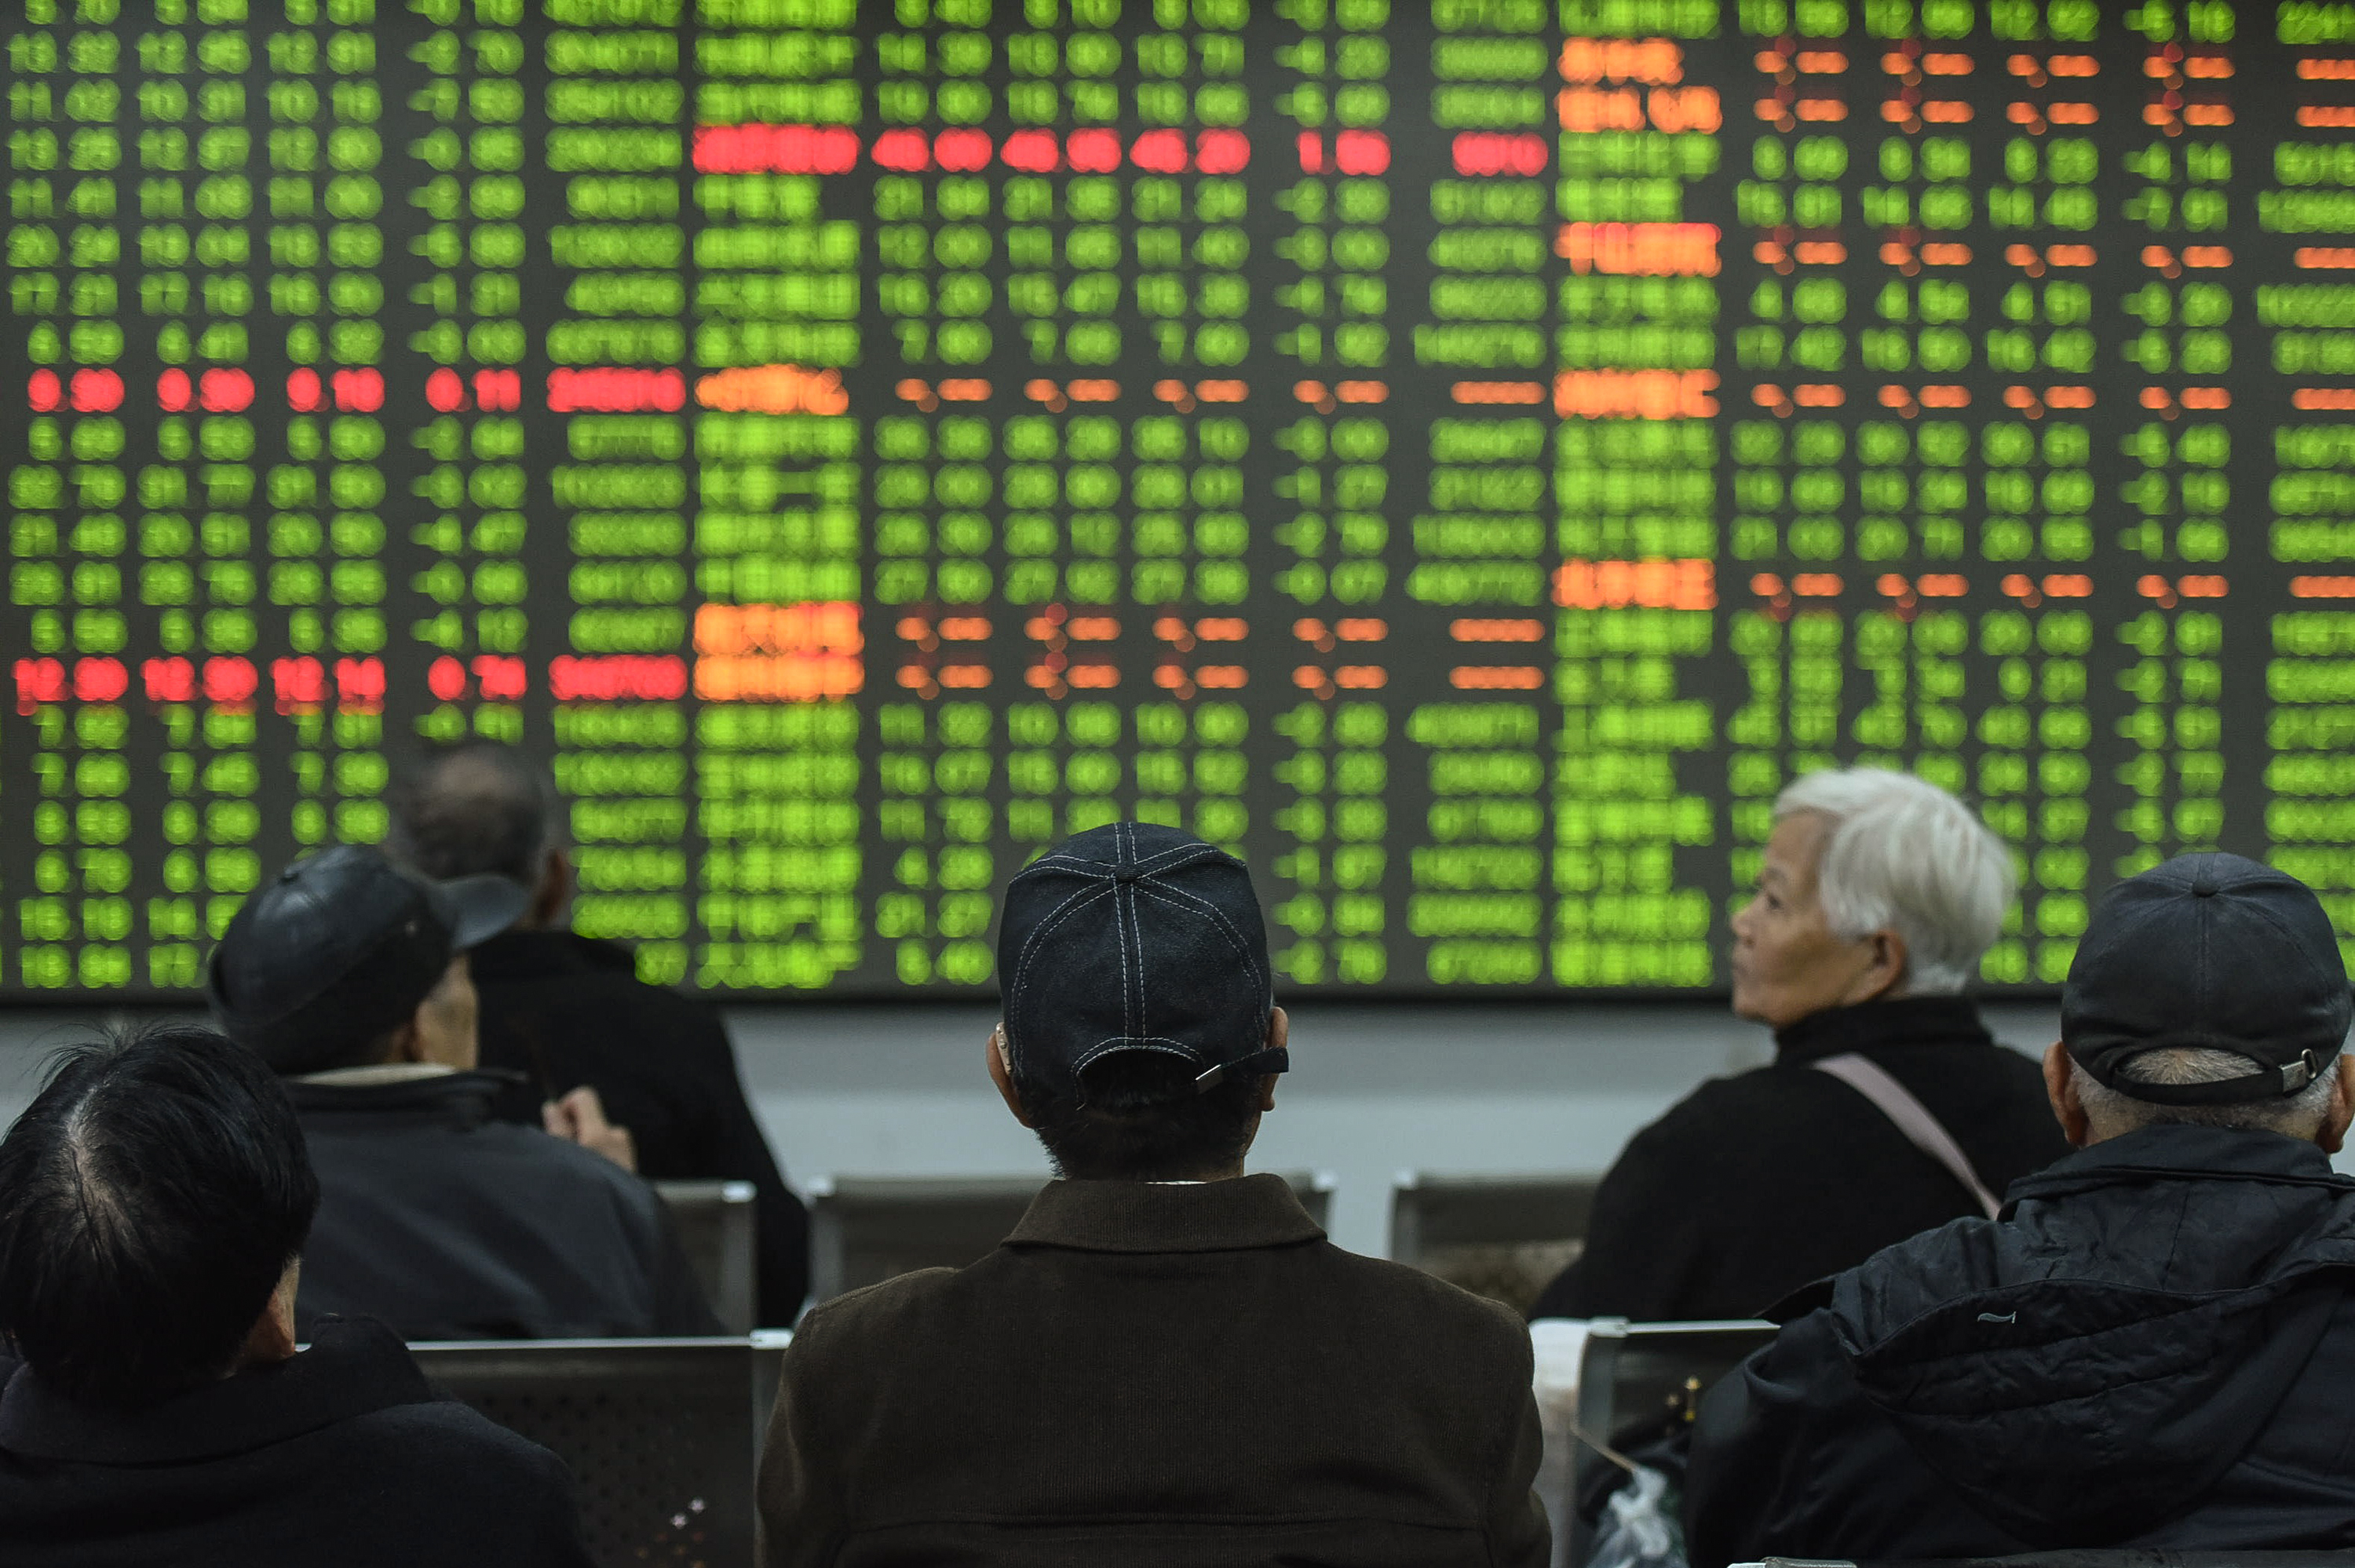 Investors look at a screen showing stock market movements in Hangzhou, China, on February 3, 2020.